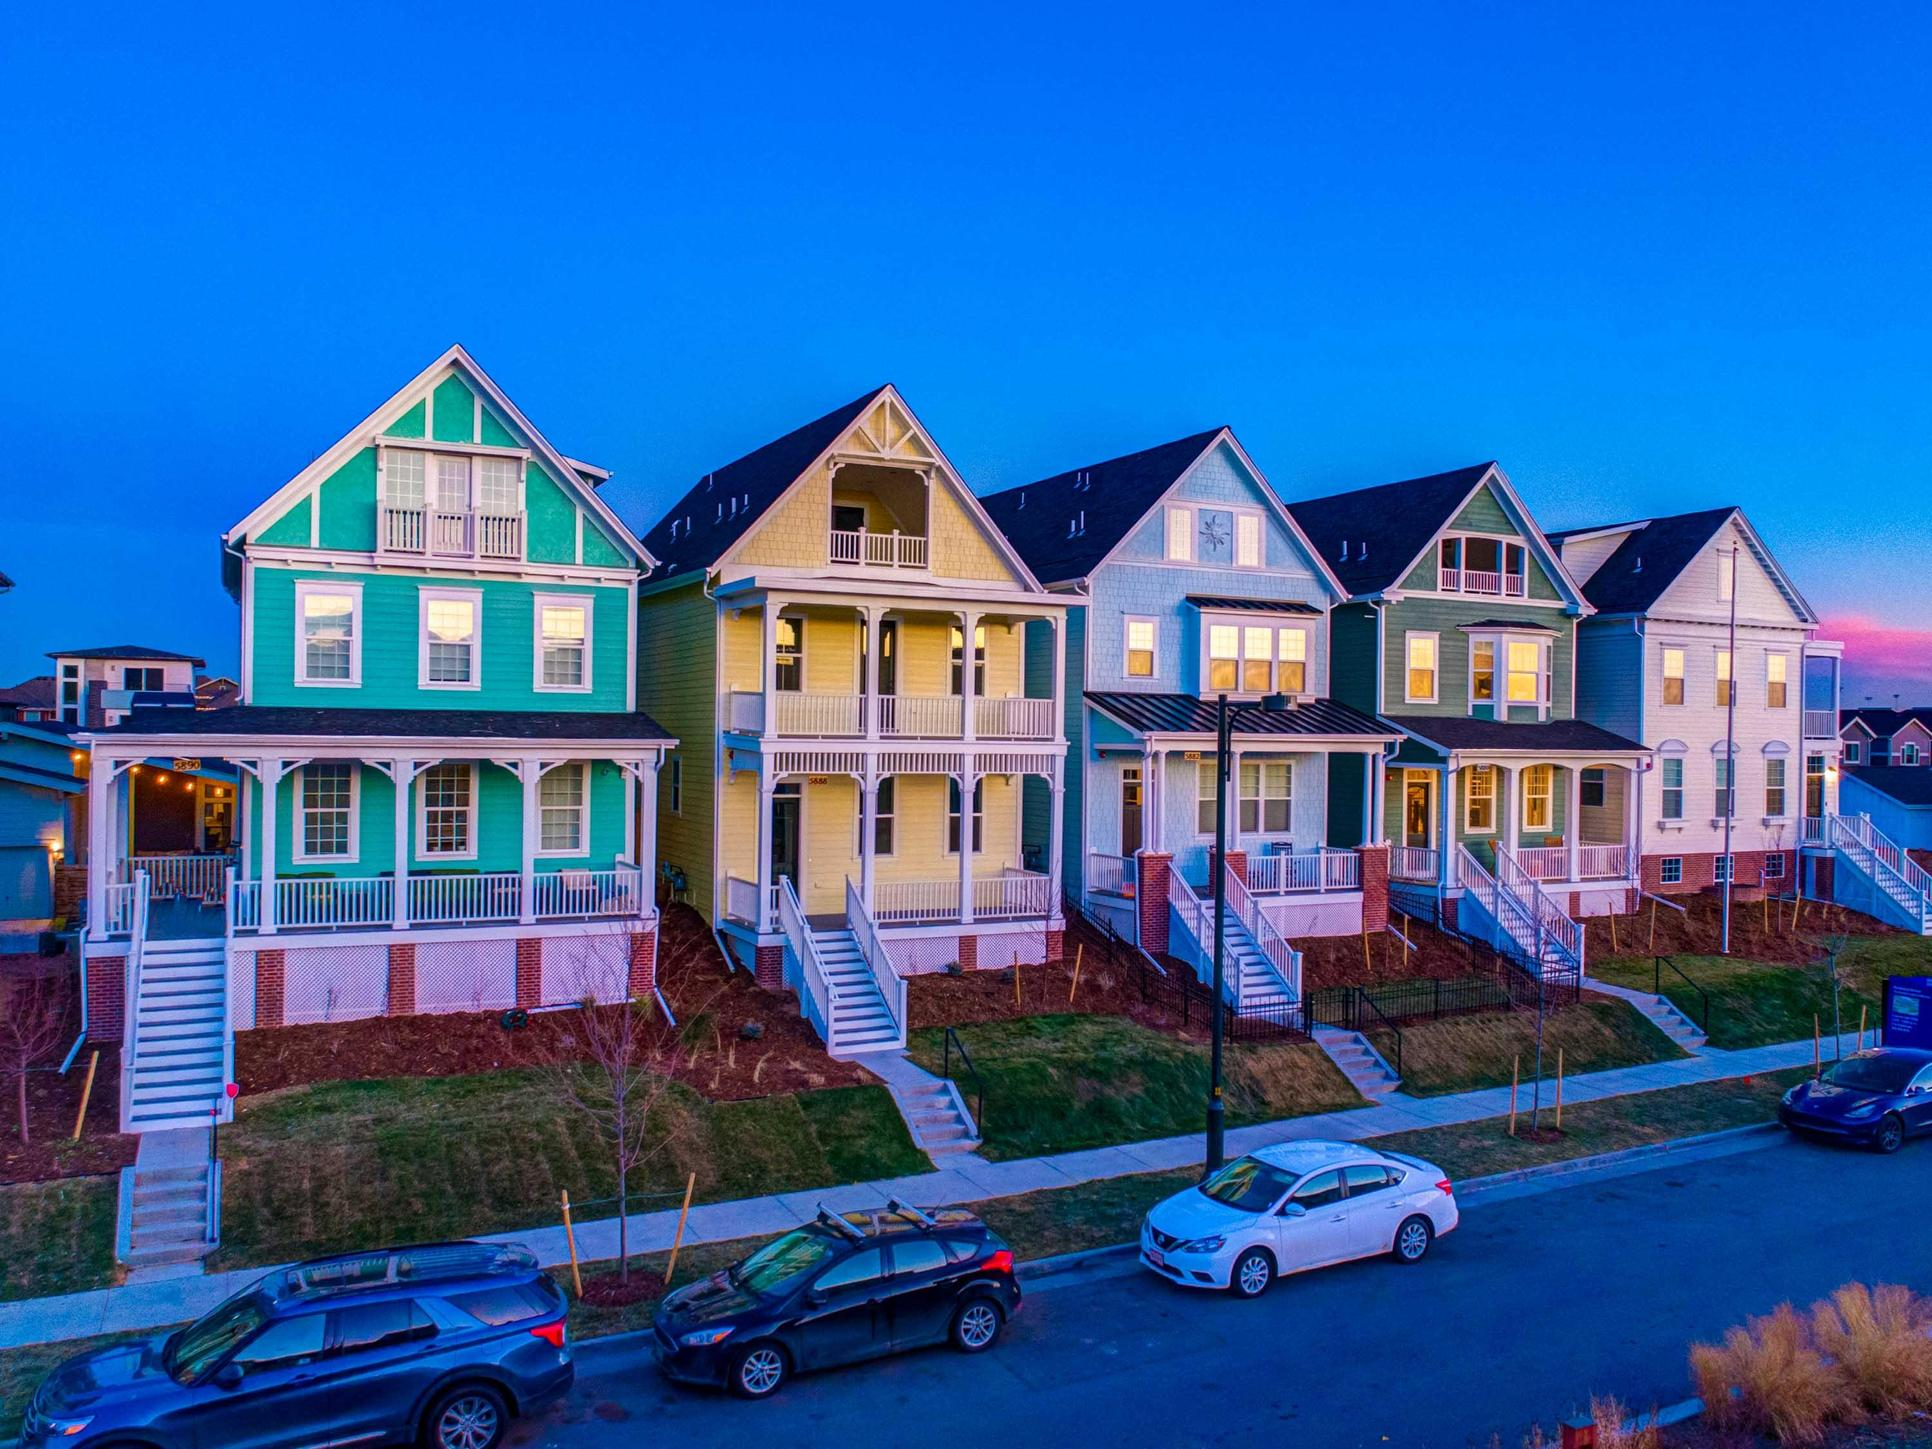 The Painted Ladies Collection